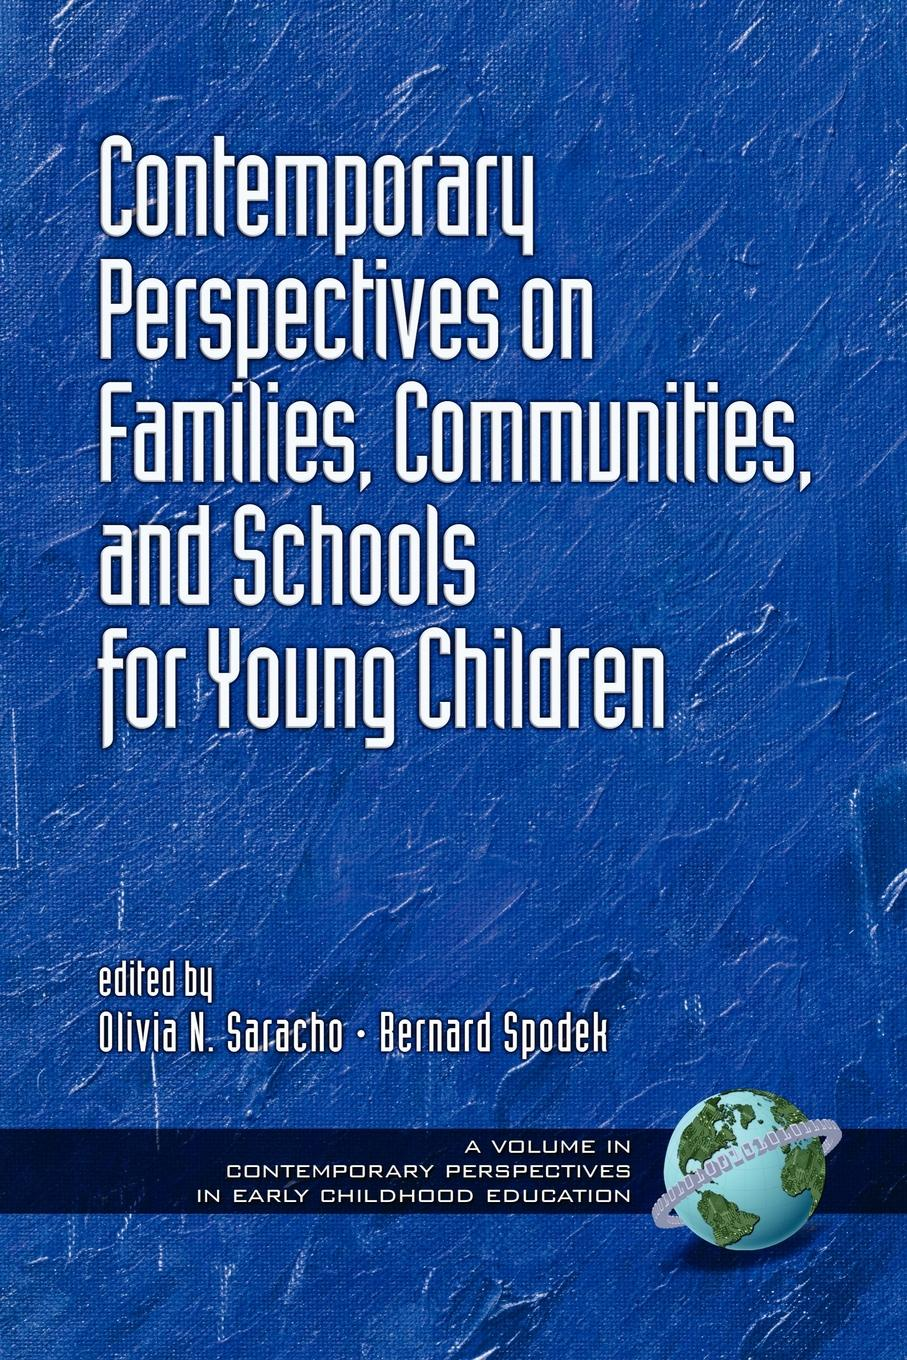 Contemporary Perspectives on Families, Communities, and Schools for Young Children (PB) contemporary perspectives on science and technology in early childhood education pb